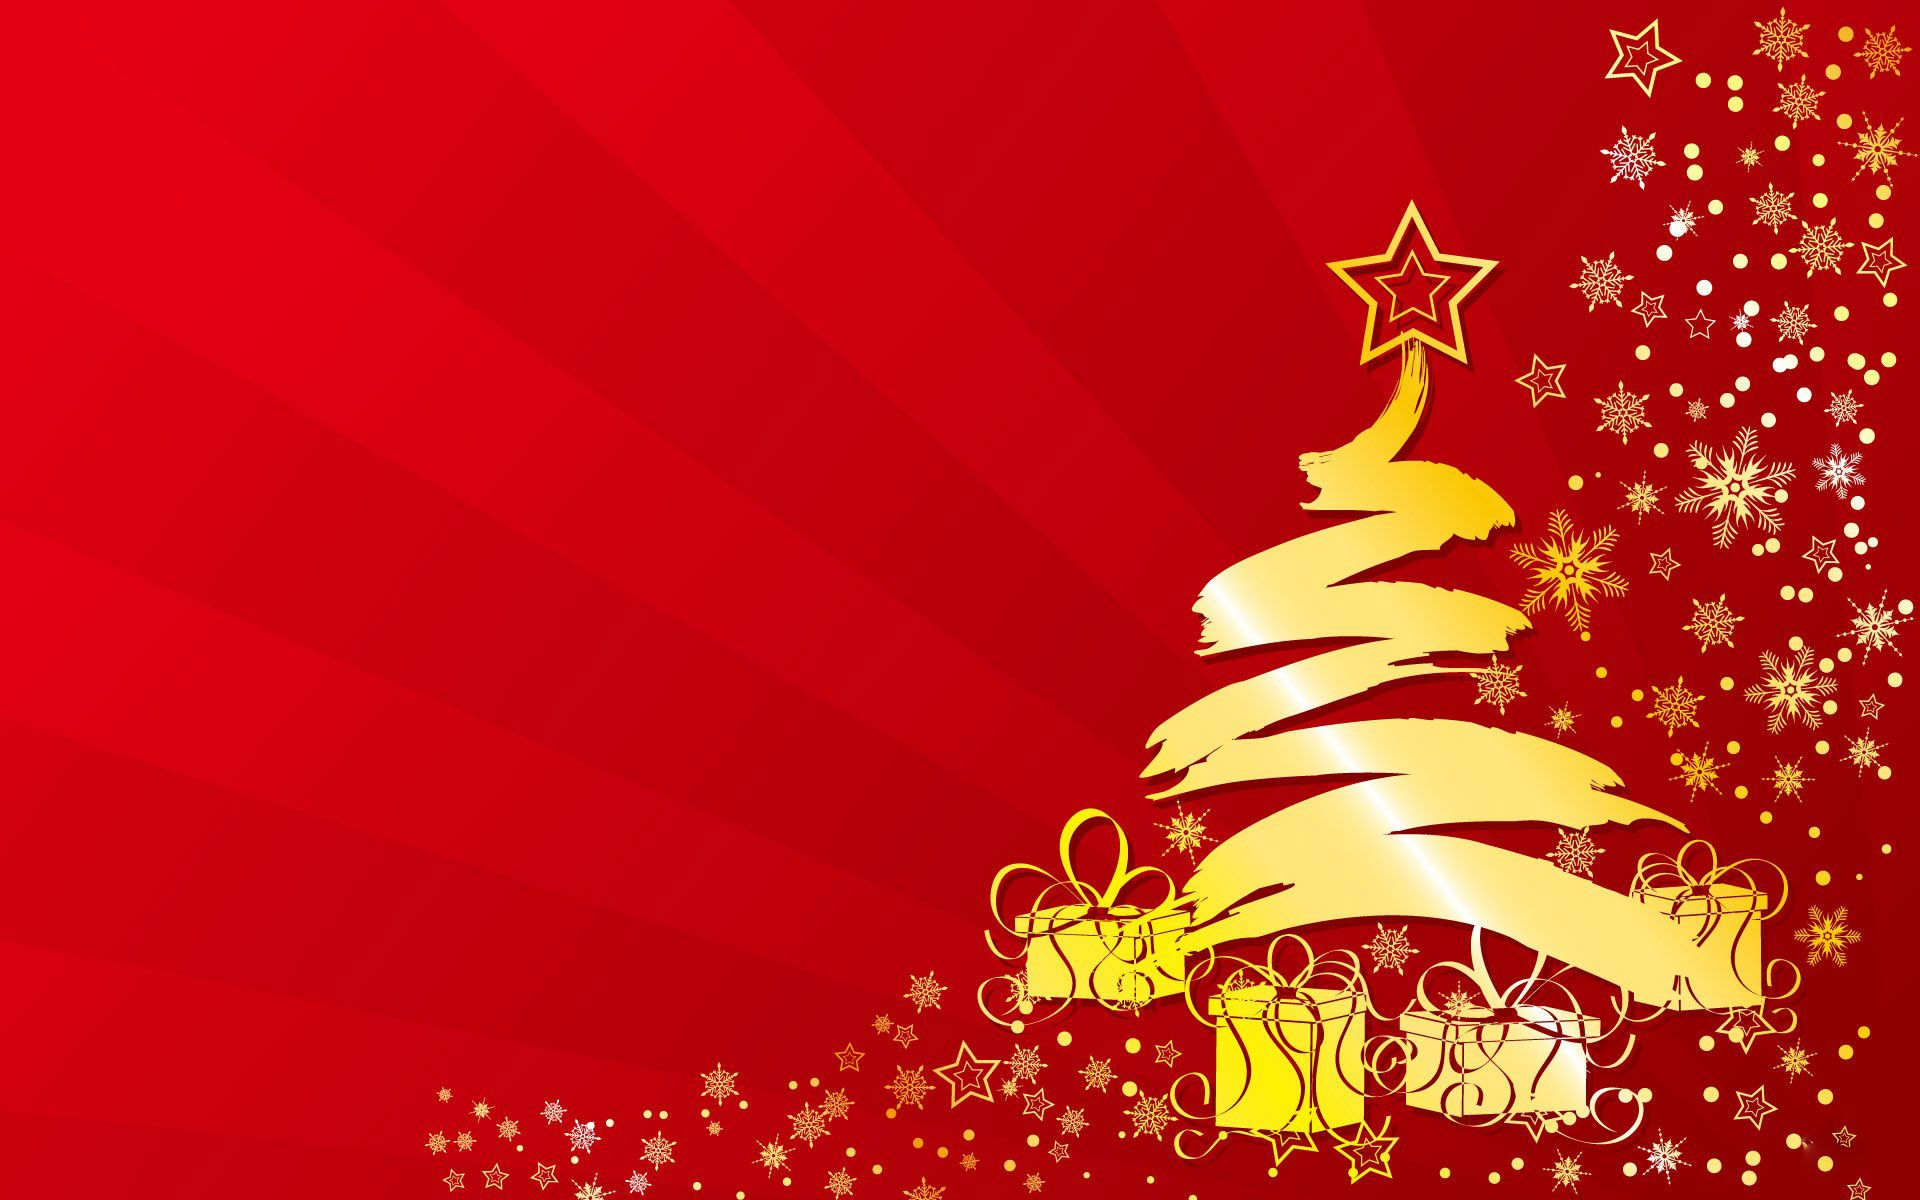 Christmas Tree Clipart red christmas tree background hd